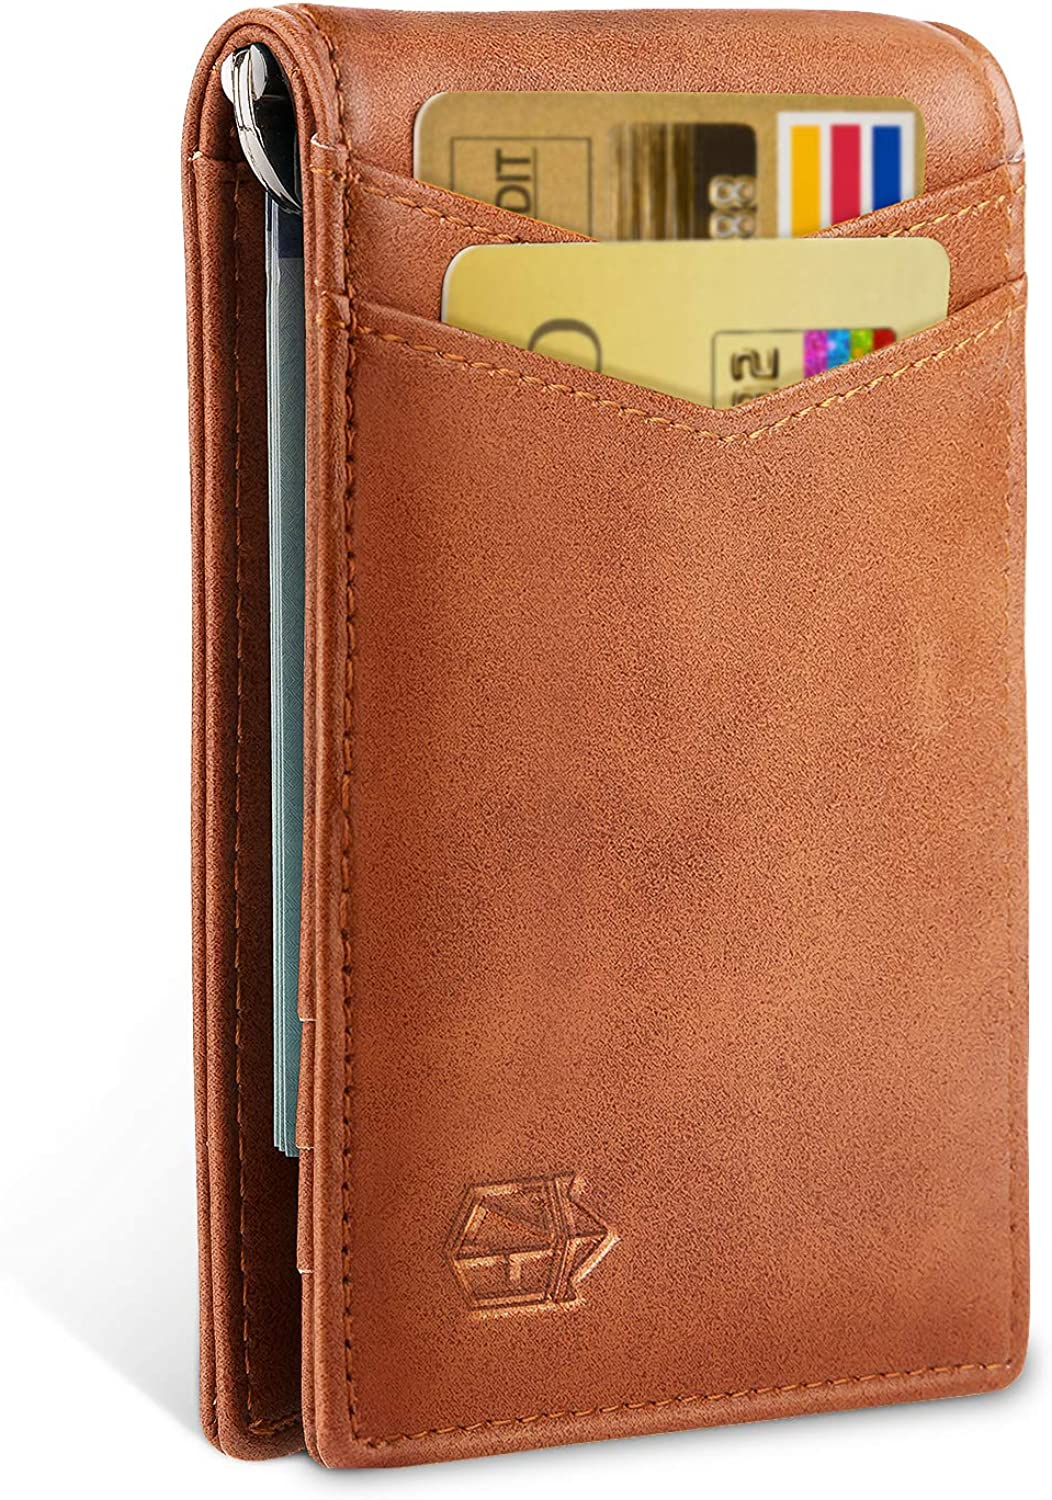 Zitahli Minimalist Slim Bifold Front Pocket Wallet with Upgraded Money Clip for Men, RFID Blocking & Unique Quick-access Pull Tab Design with 1 ID Window